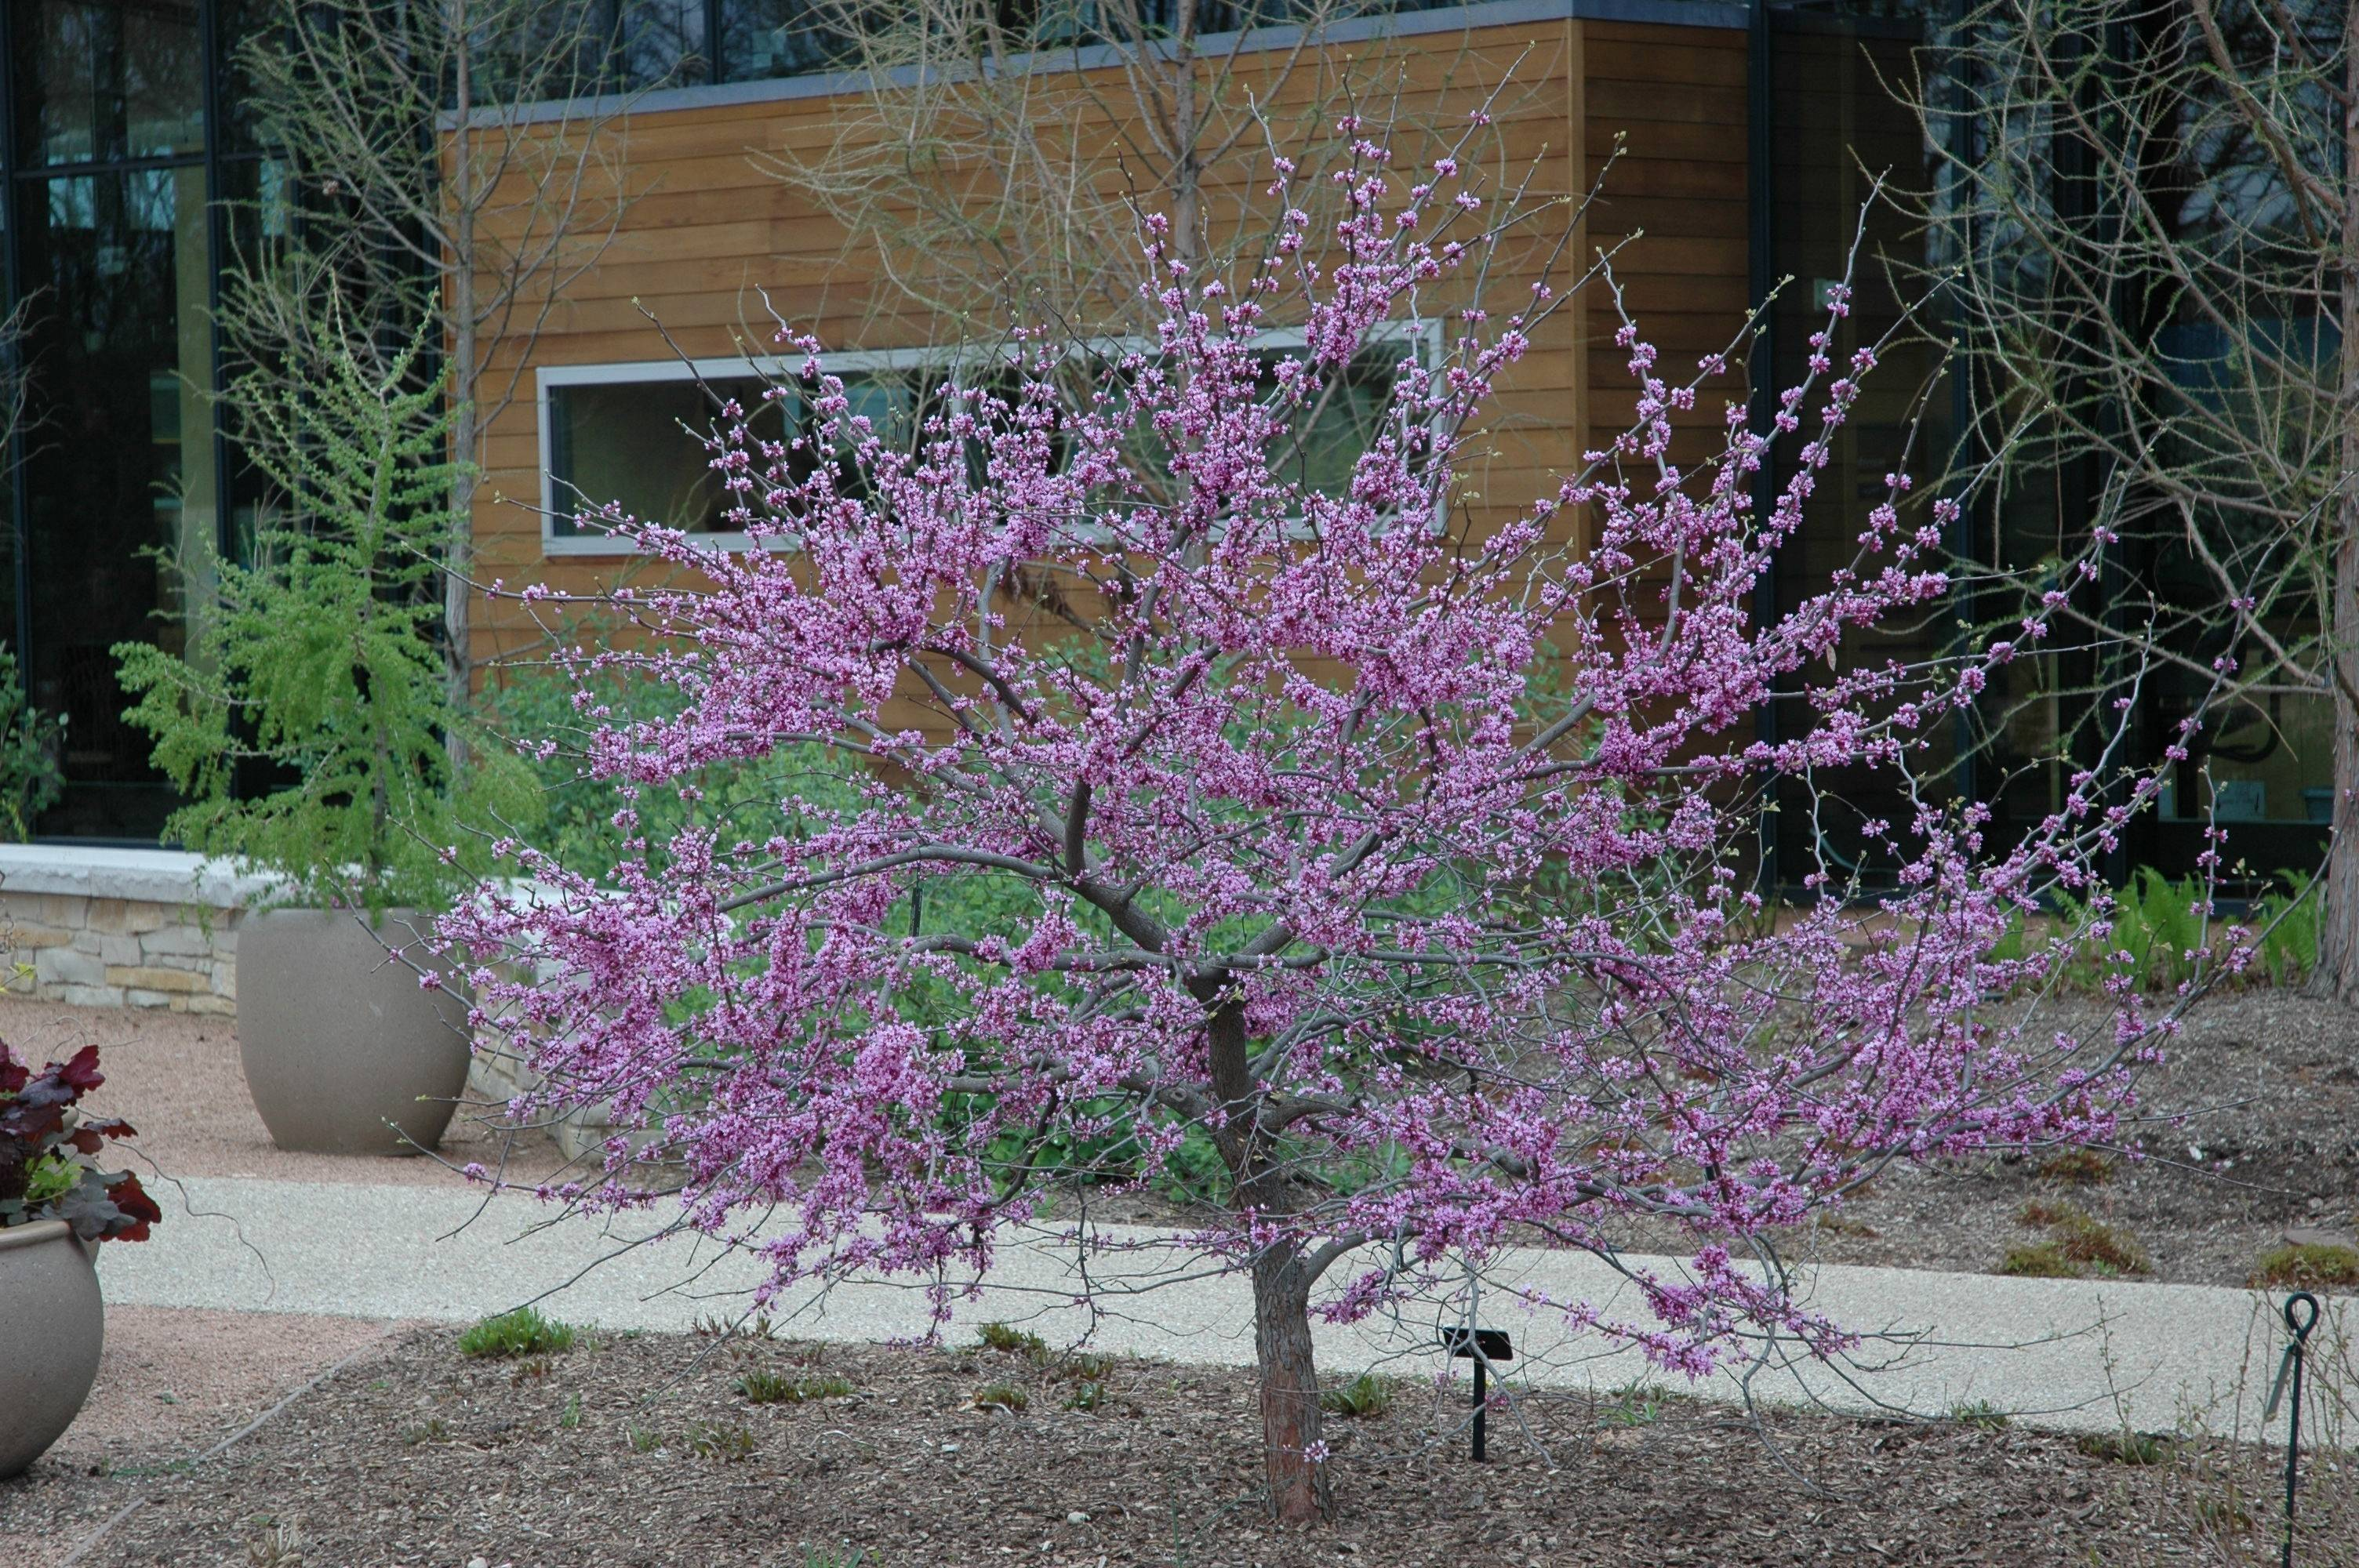 The redbud produces bright purplish-pink flowers that line dark branches before its leaves open.